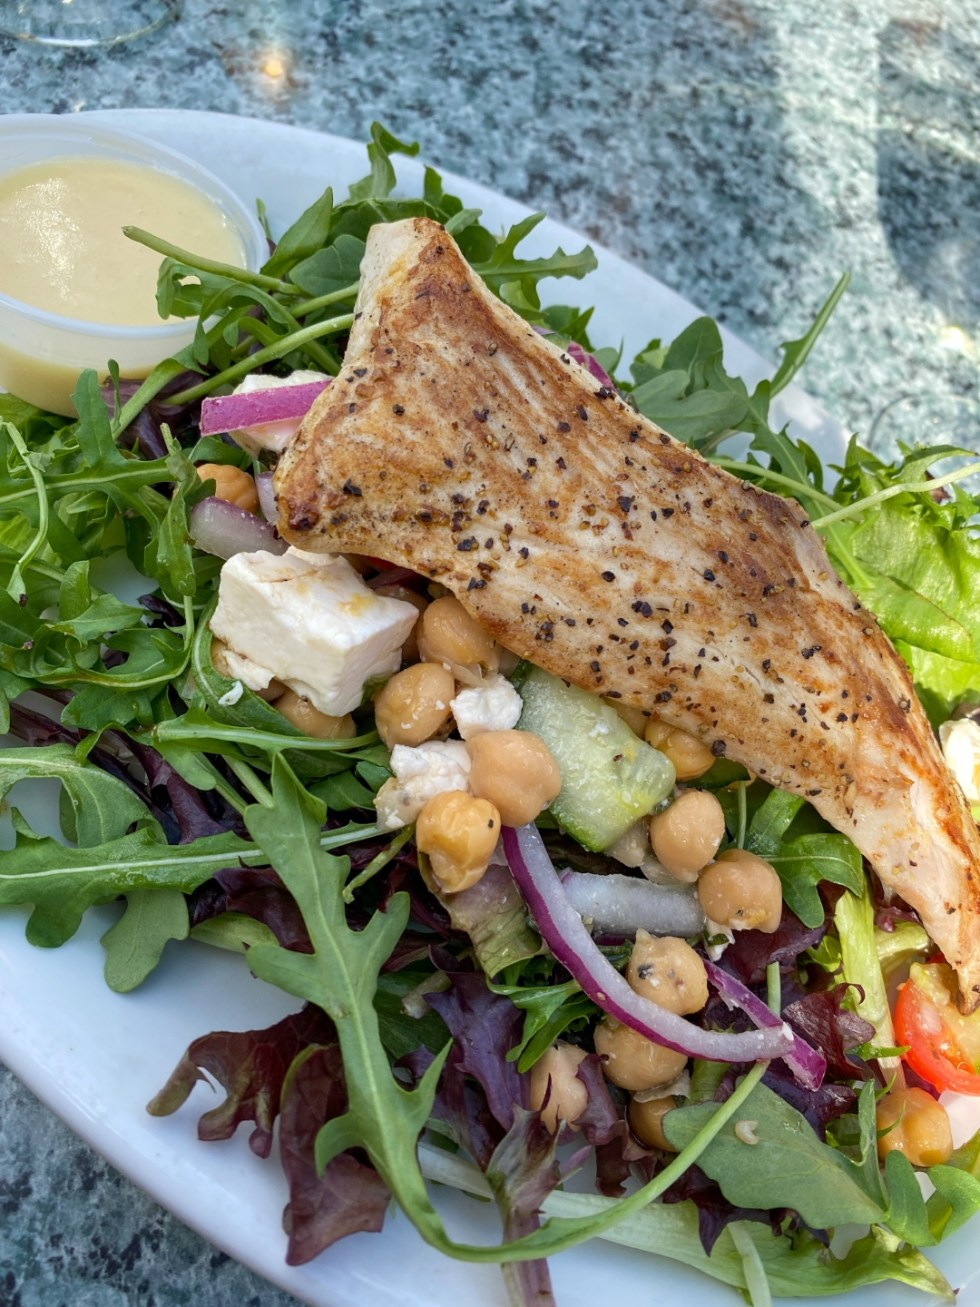 Weekend Travel: The Best Things to Do in Beaufort NC in 48 Hours - I'm Fixin' To - @imfixintoblog |Things to Do in Beaufort NC by popular NC travel blog, I'm Fixin' To: image of a salad.